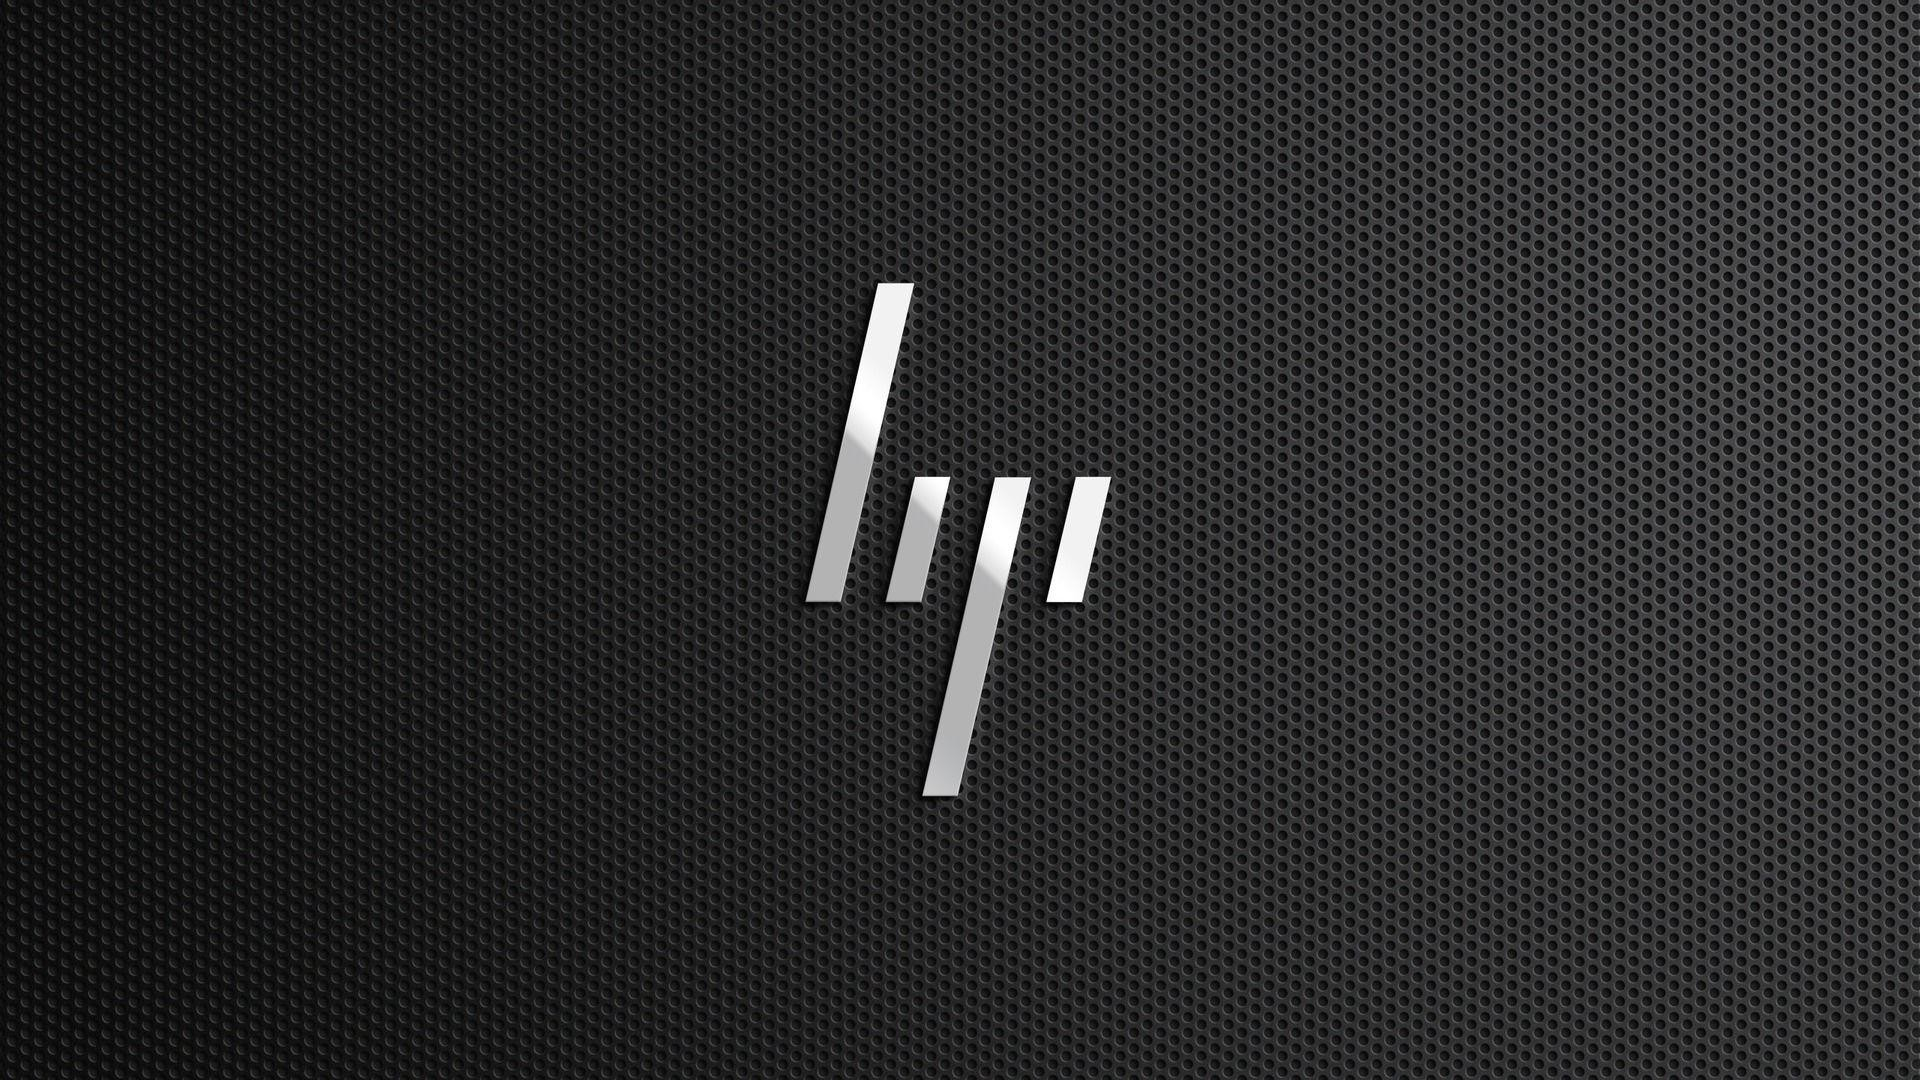 1920x1080 - Wallpapers for HP Envy 2